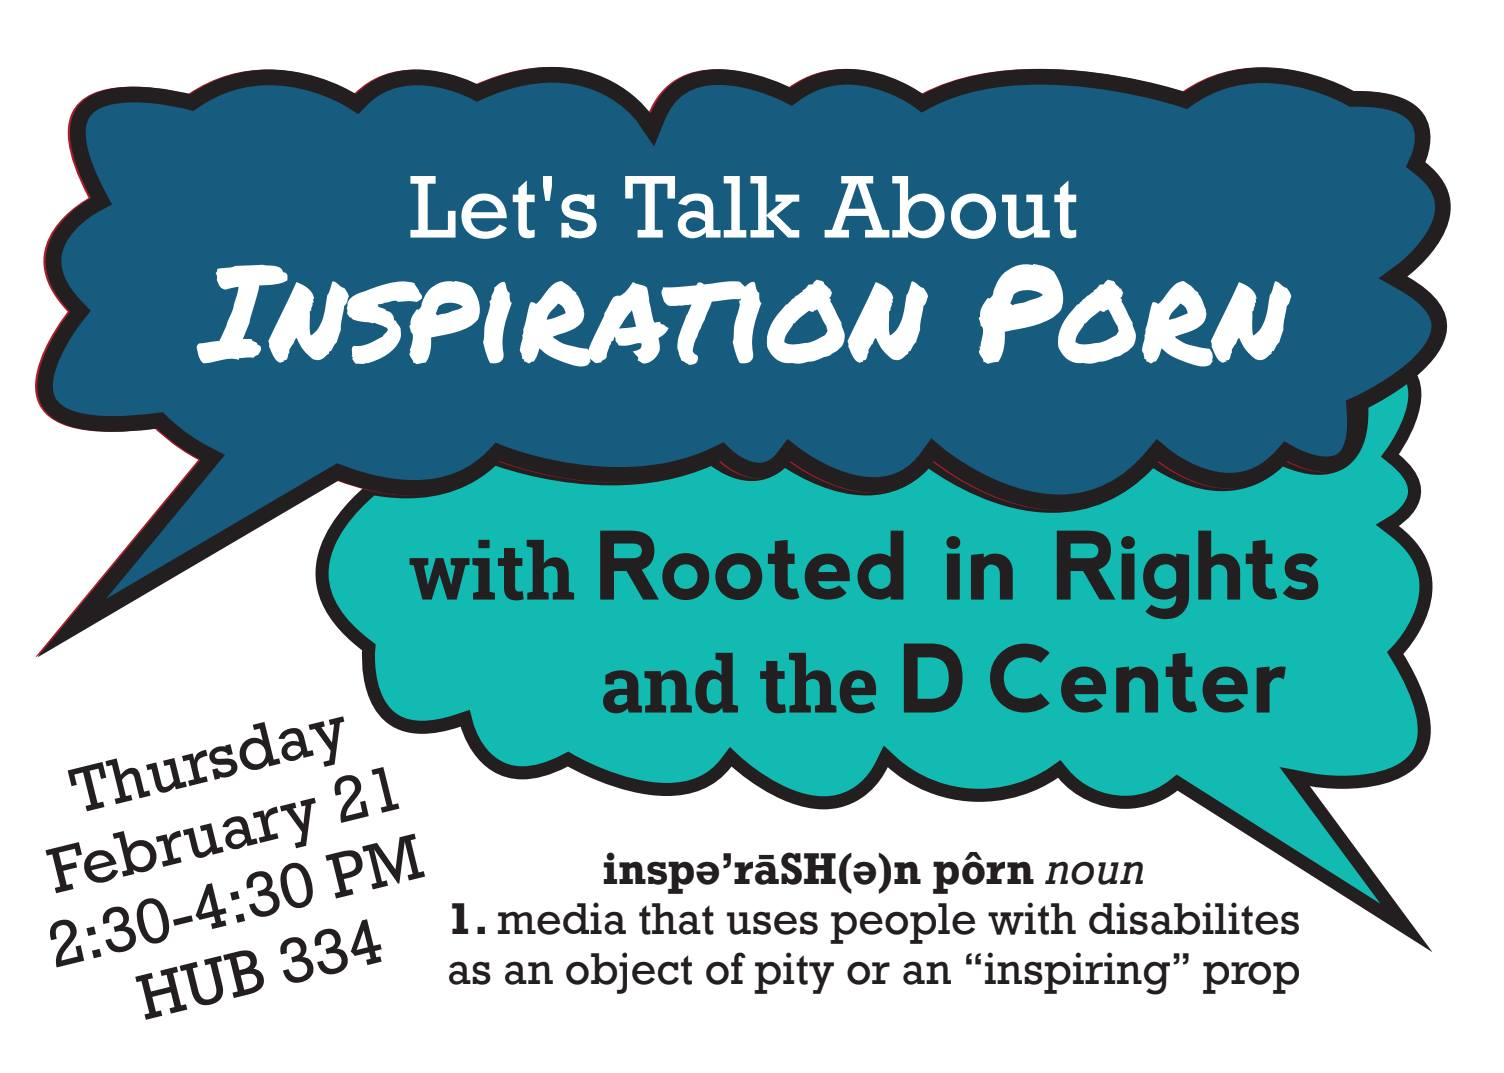 """Let's Talk About Inspiration Porn. With Rooted in Rights and the D Center"" (all in blue speech bubbles). Below are the details: ""Thursday February 21st 2:30 PM - 4:30 PM in The HUB (Room 334)."